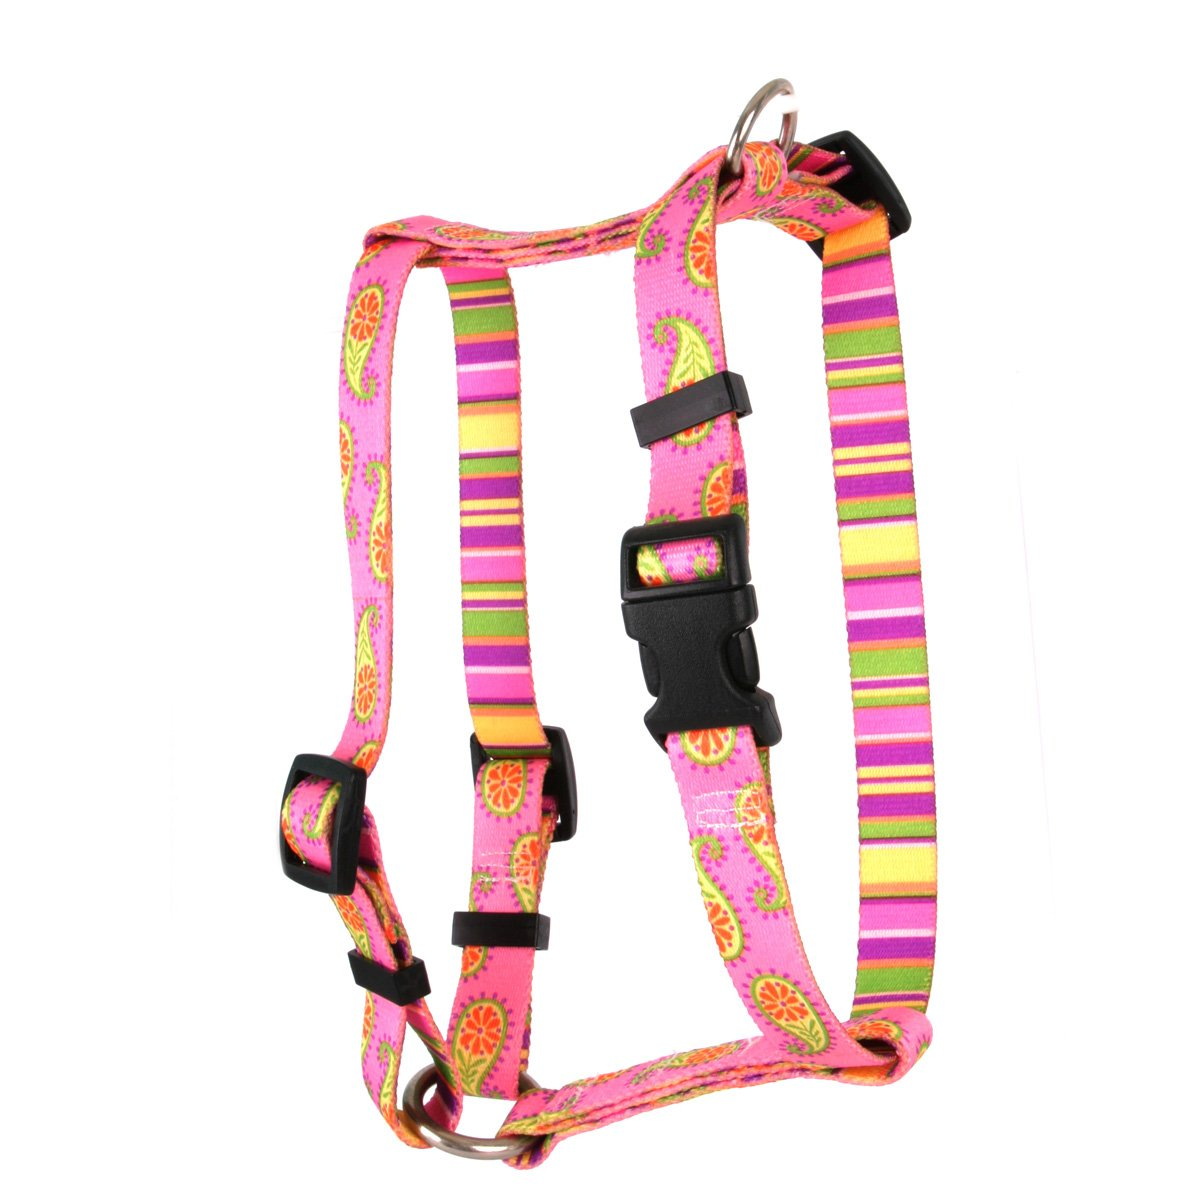 Yellow Dog Design Pink Paisley Roman Style H Dog Harness, X-Small-3/8 Wide and fits Chest of 8 to 14'' by Yellow Dog Design